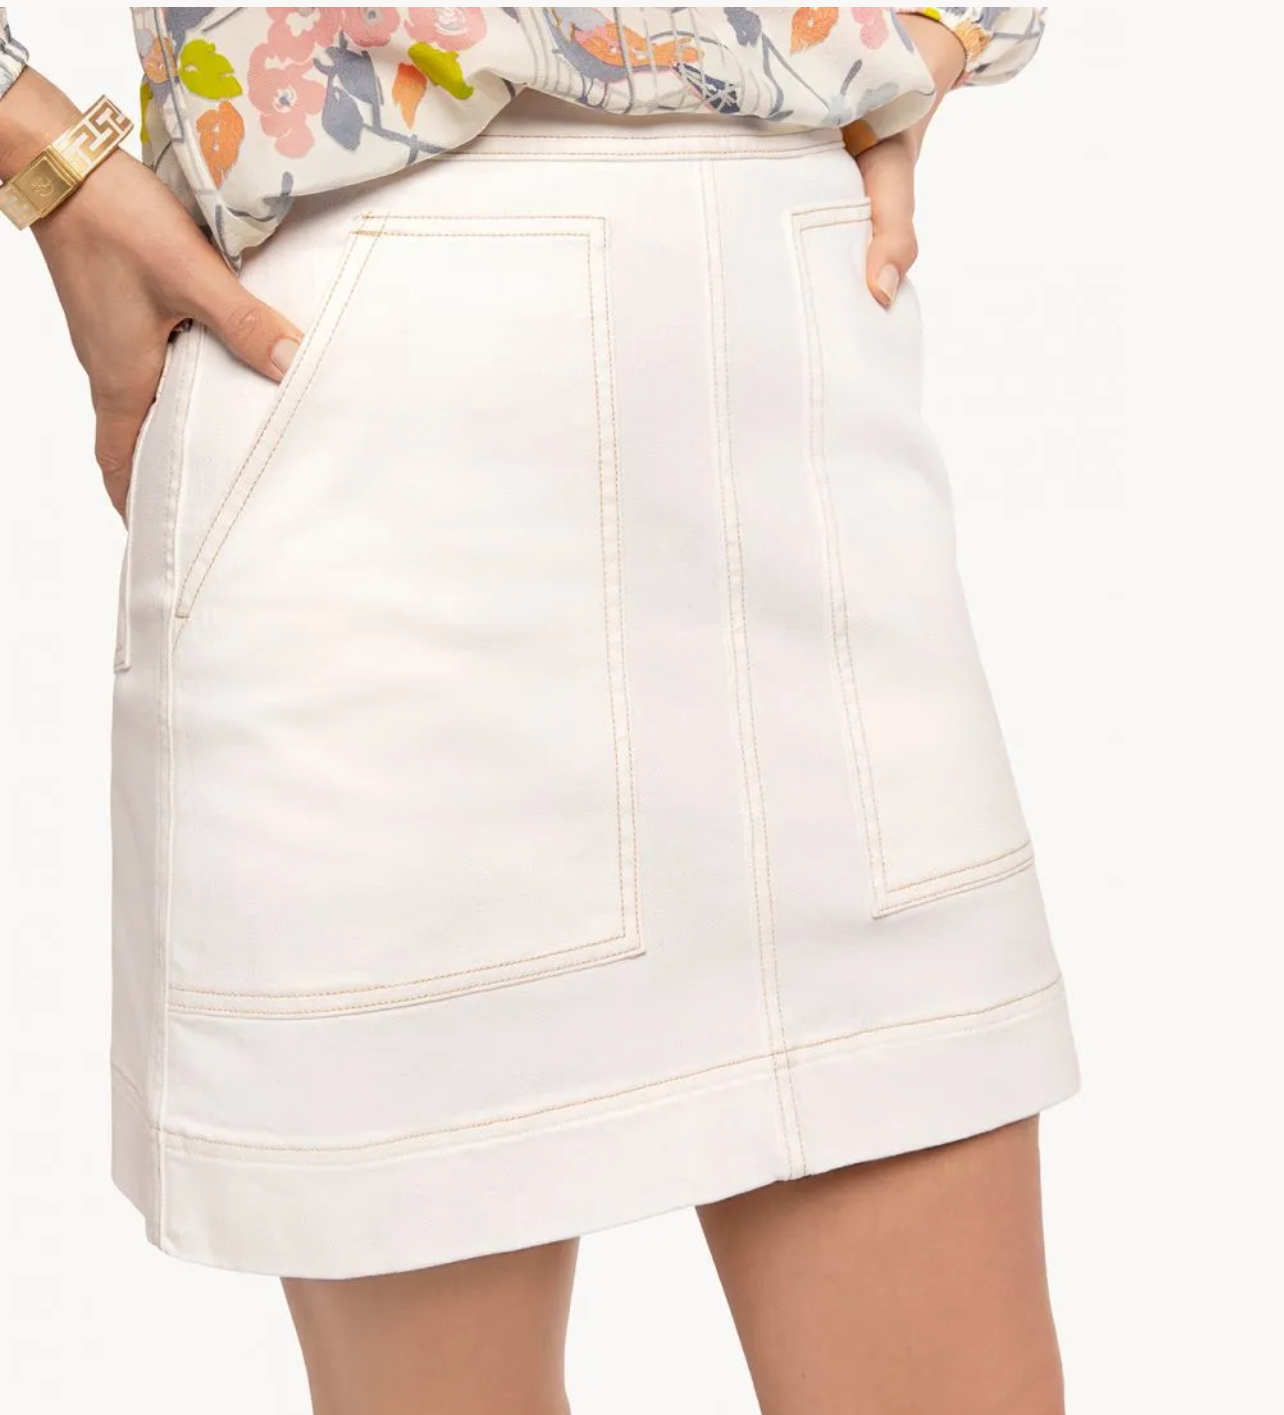 Spartina Isla Denim Skirt - Pearl White